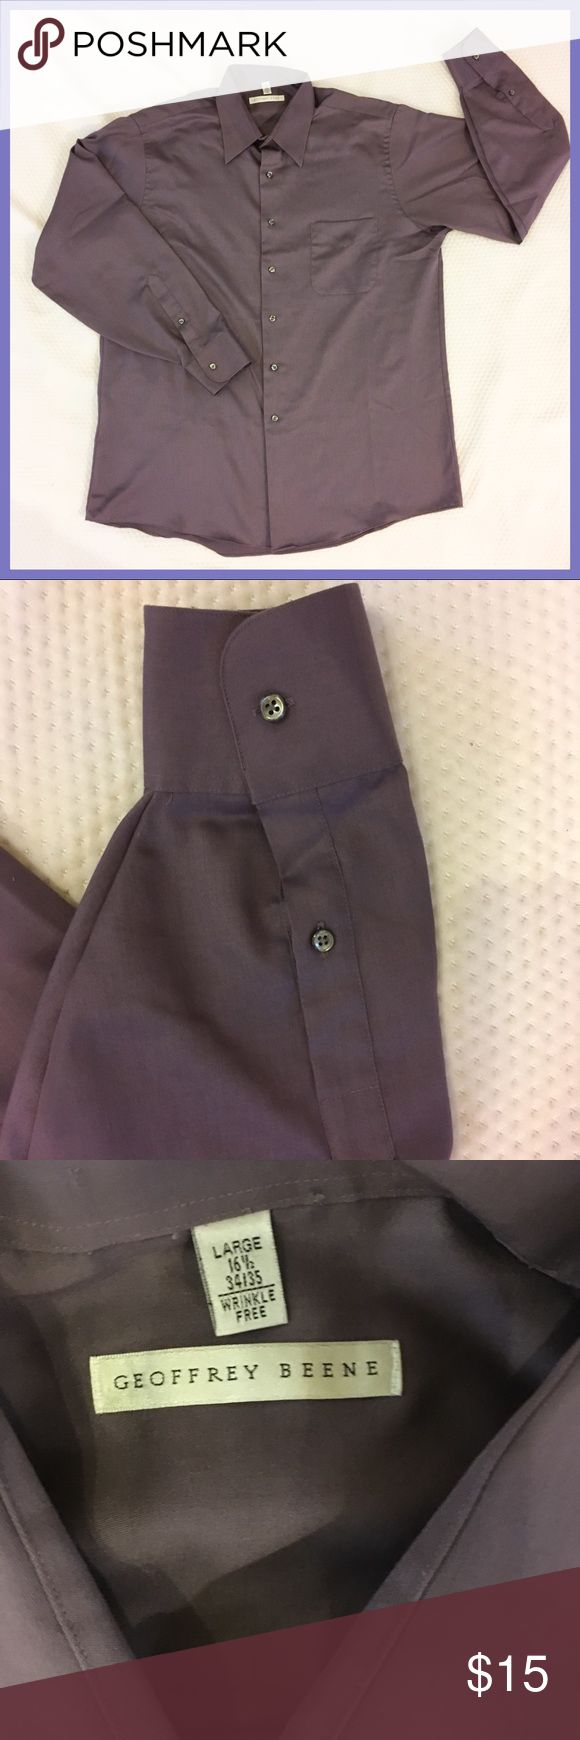 "Geoffrey Beene Plum Purple Dress Shirt Size Large. In great condition. Long sleeves / double Button cuffs ~ Button down ~ Wrinkle resistant  Pit to pit : 24"" Shoulder to hem: 30"" Sleeve length: 25"" Geoffrey Beene Shirts Dress Shirts"